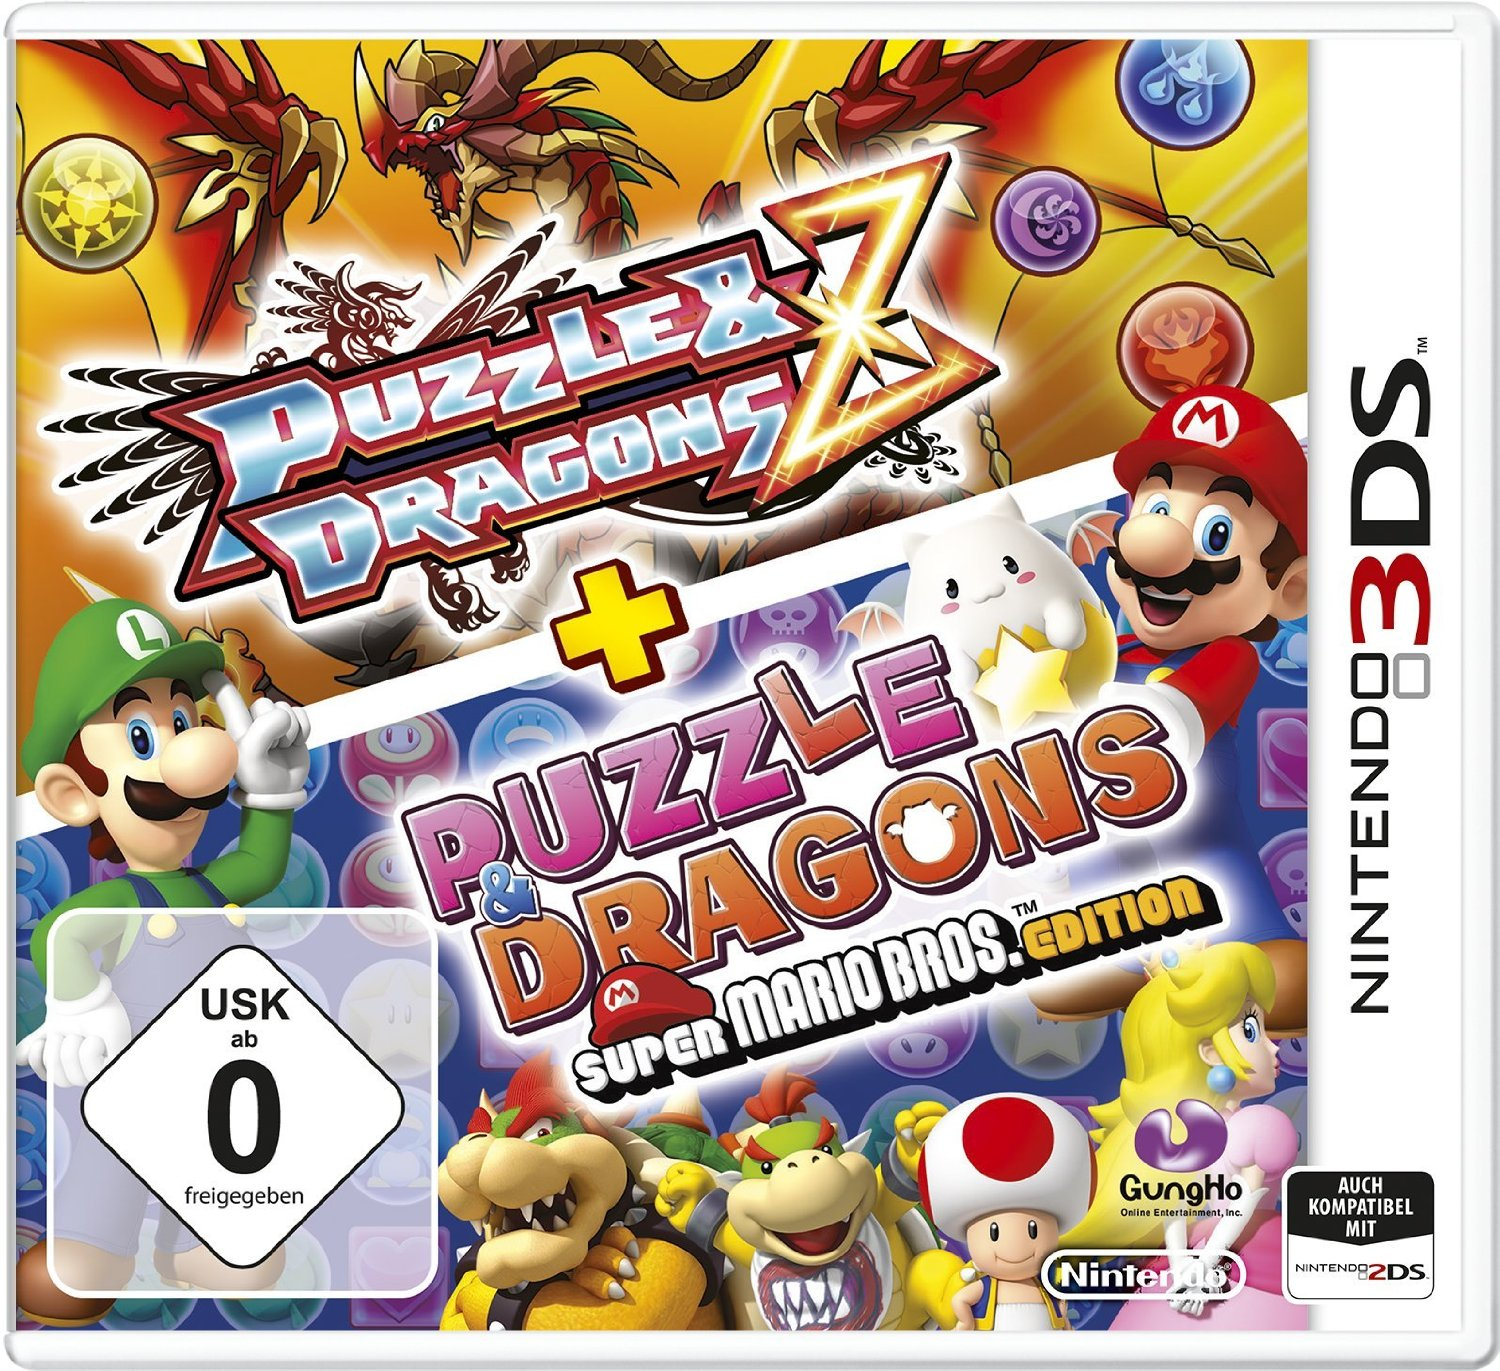 Puzzle & Dragons - Super Mario Bros. Edition